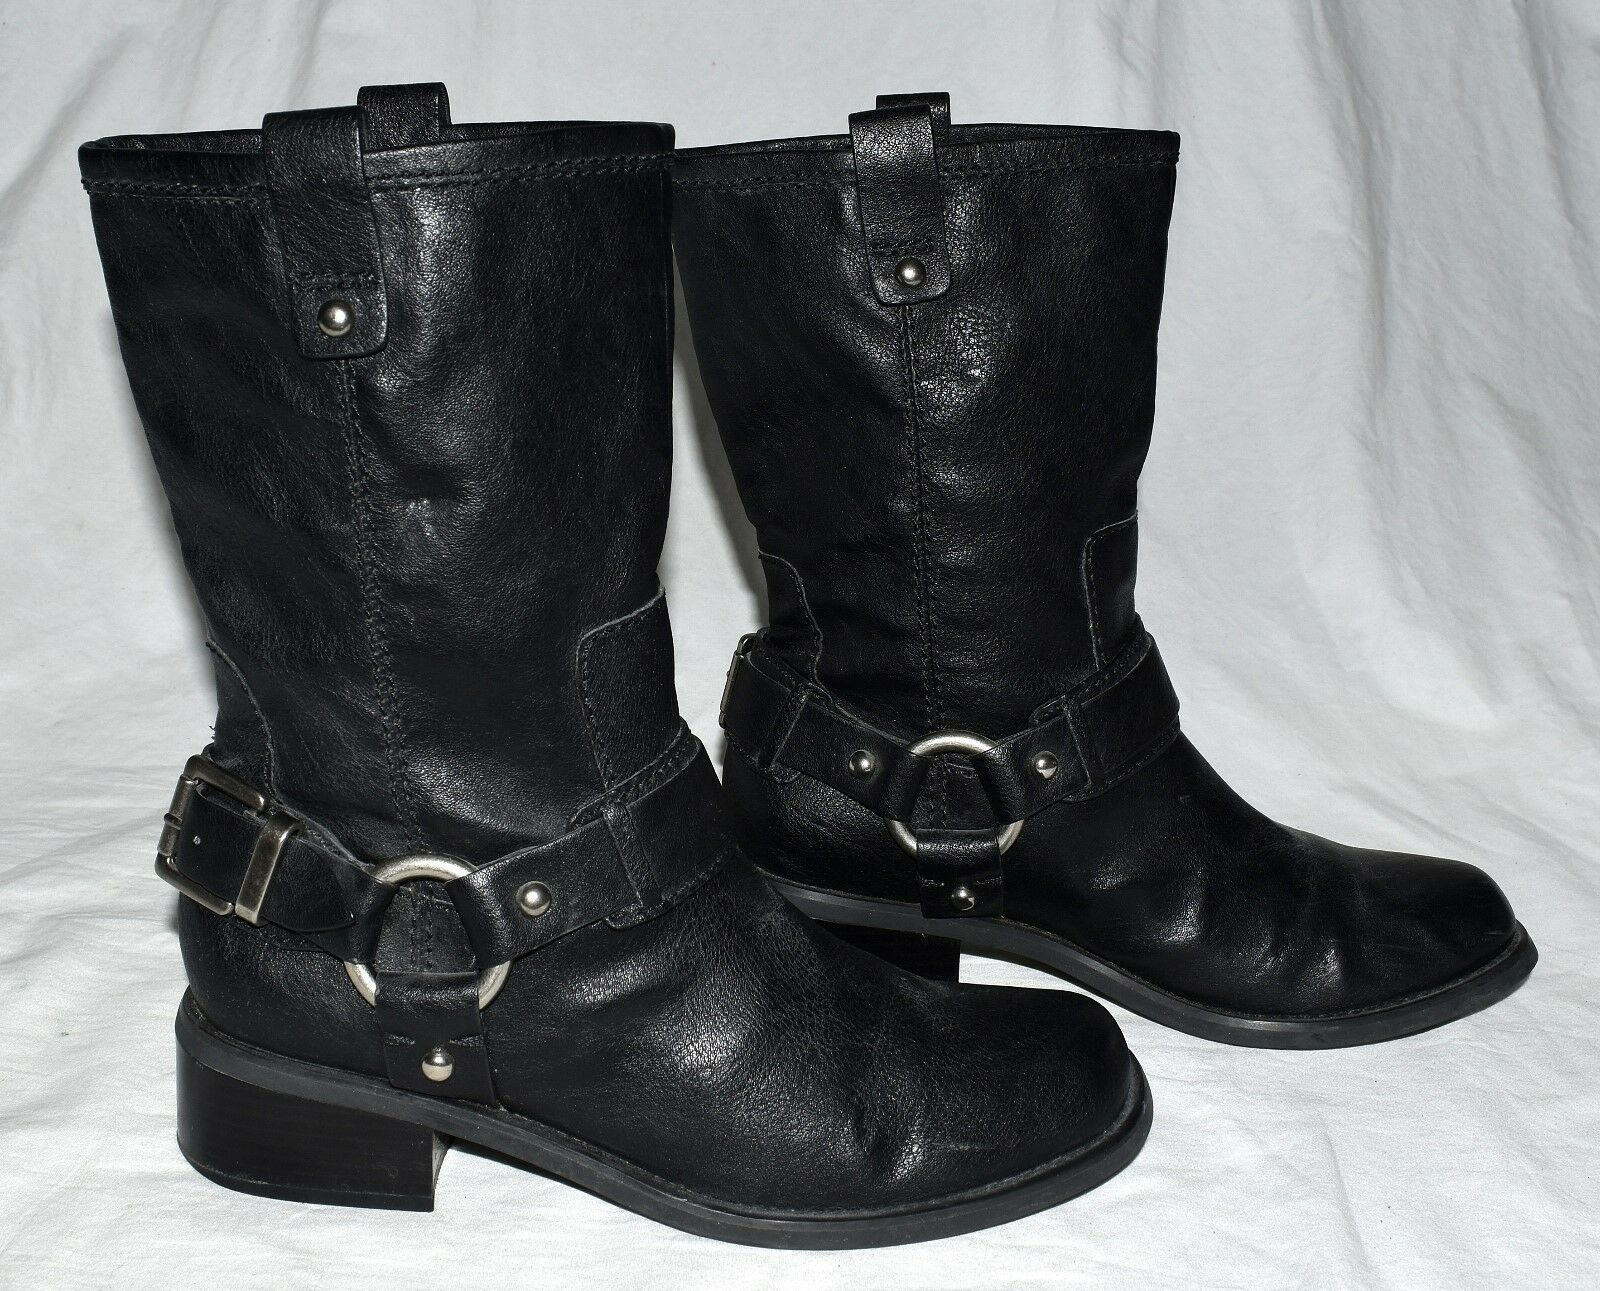 Jessica Simpson Inna Boots Black Faux Leather Harness Bikers Motorcycle Boots Inna Sz 7.5M fb8326